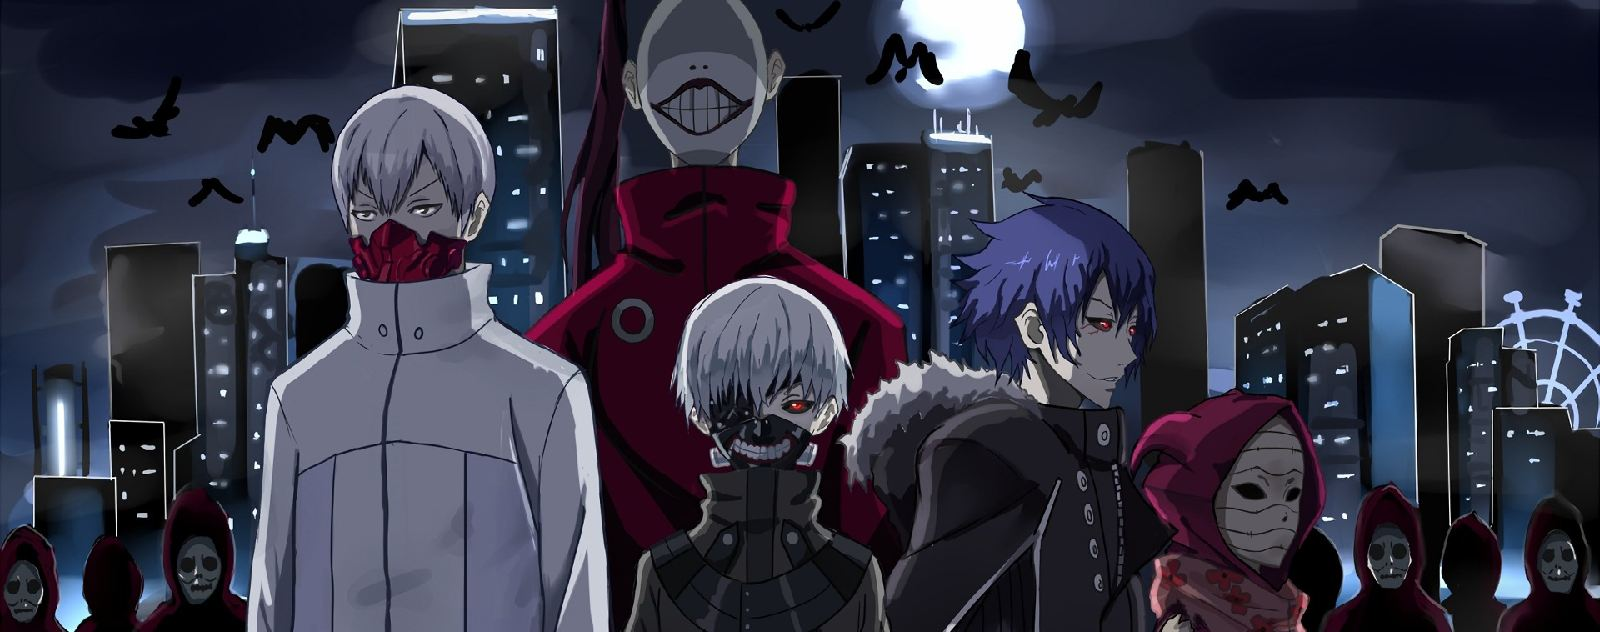 Personnages Tokyo Ghoul